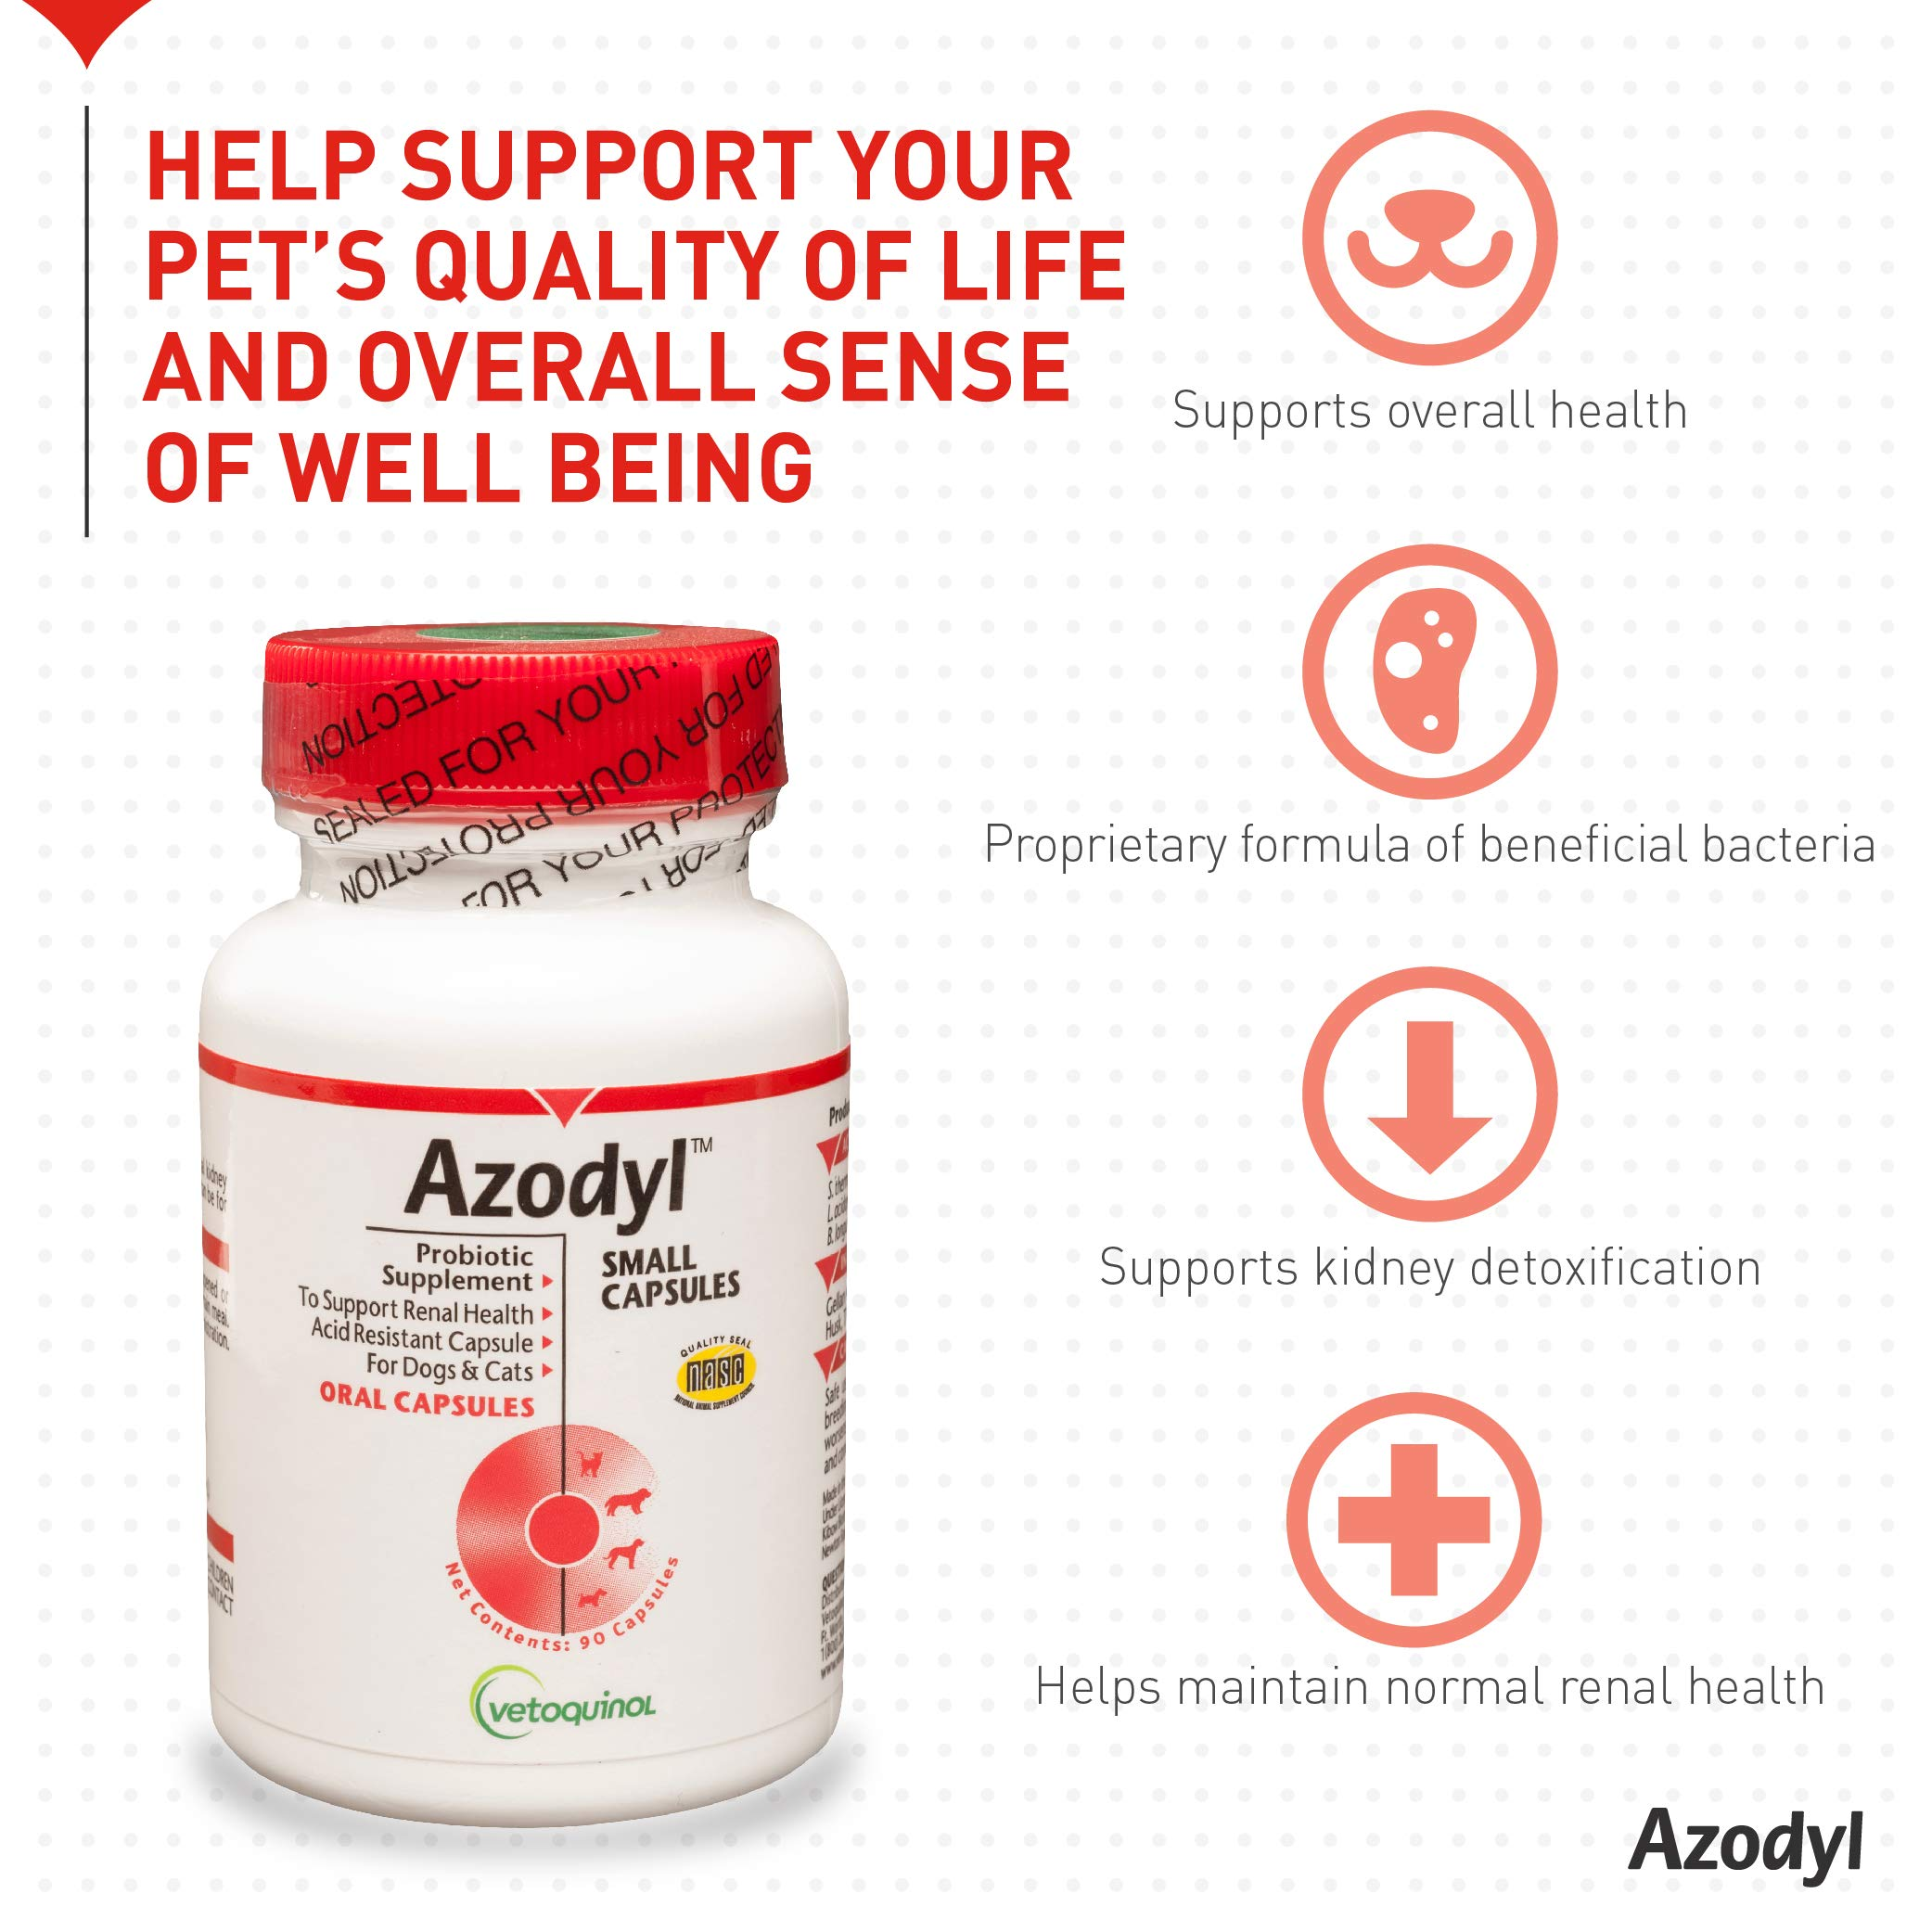 Vetoquinol Azodyl Kidney Health Supplement for Dogs & Cats, 90ct - Probiotic Pet Well-being - Help Support Kidney Function & Manage Renal Toxins - Renal Care Supplement - Easy-to-Swallow Small Caps by Vetoquinol (Image #3)